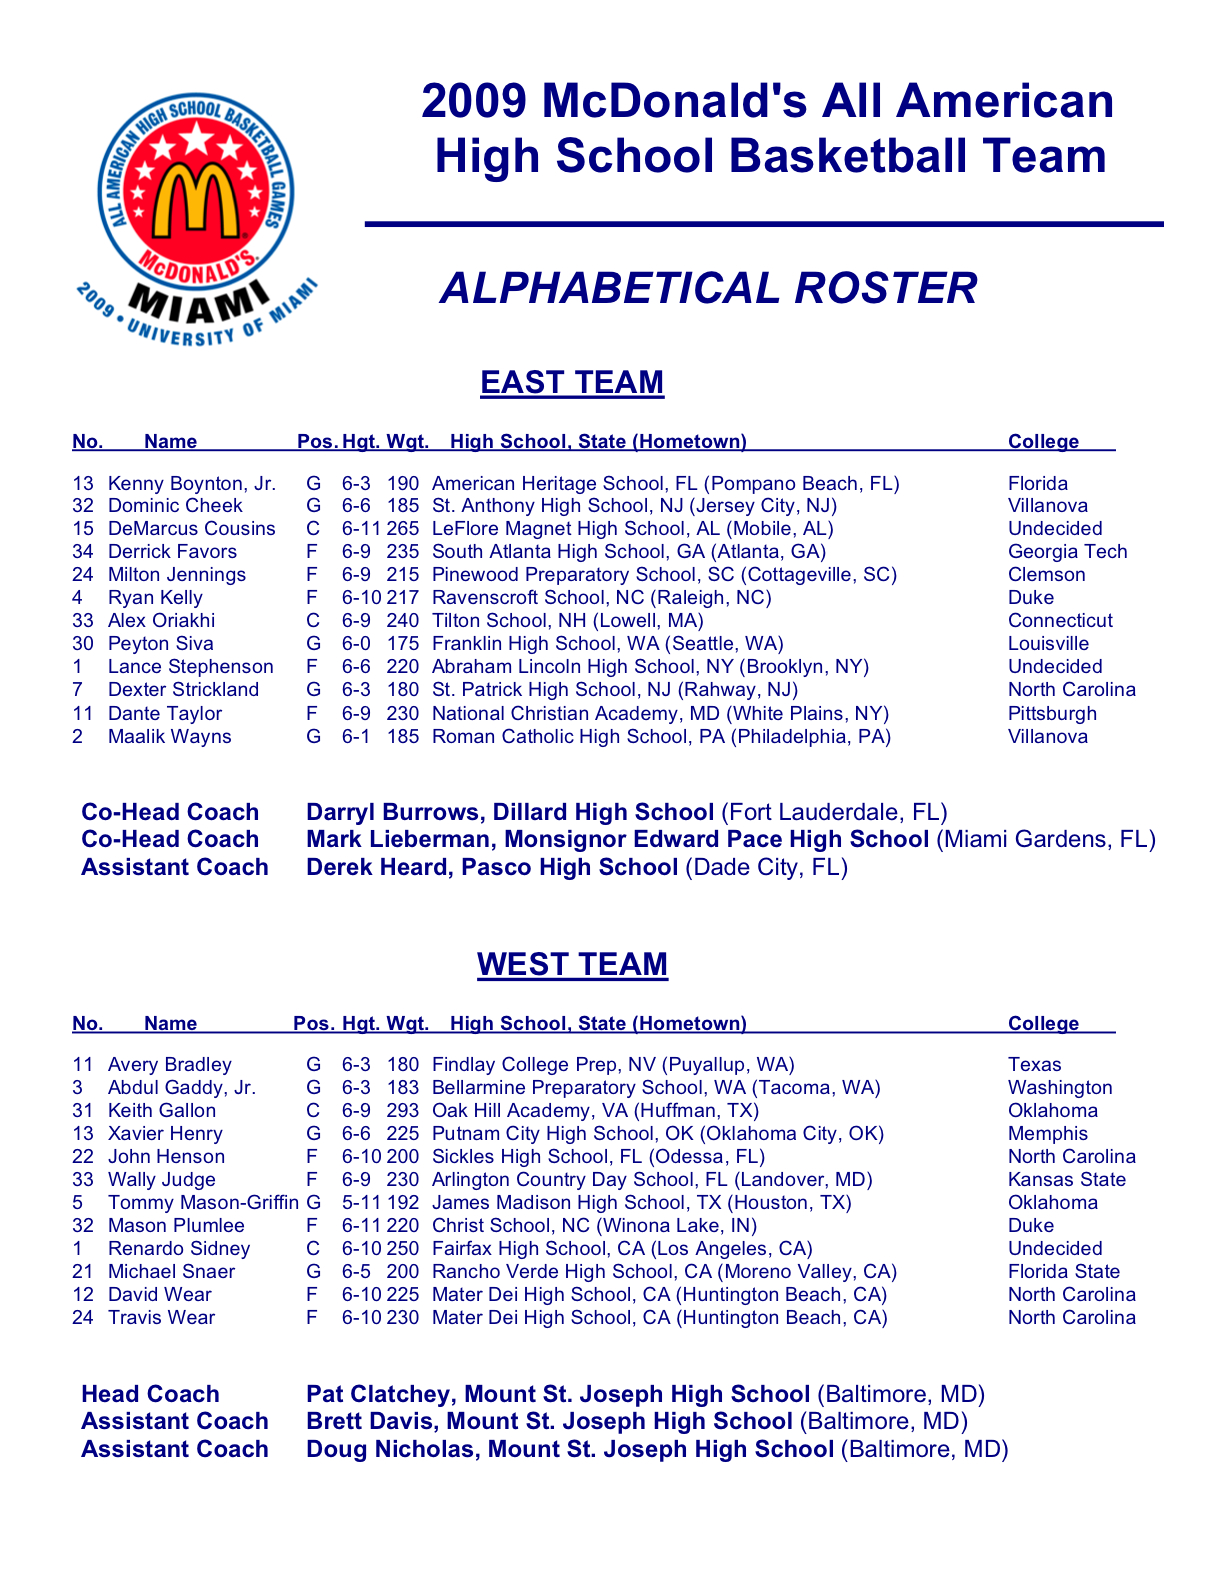 2009 McDonald's All American Game Boy's Roster